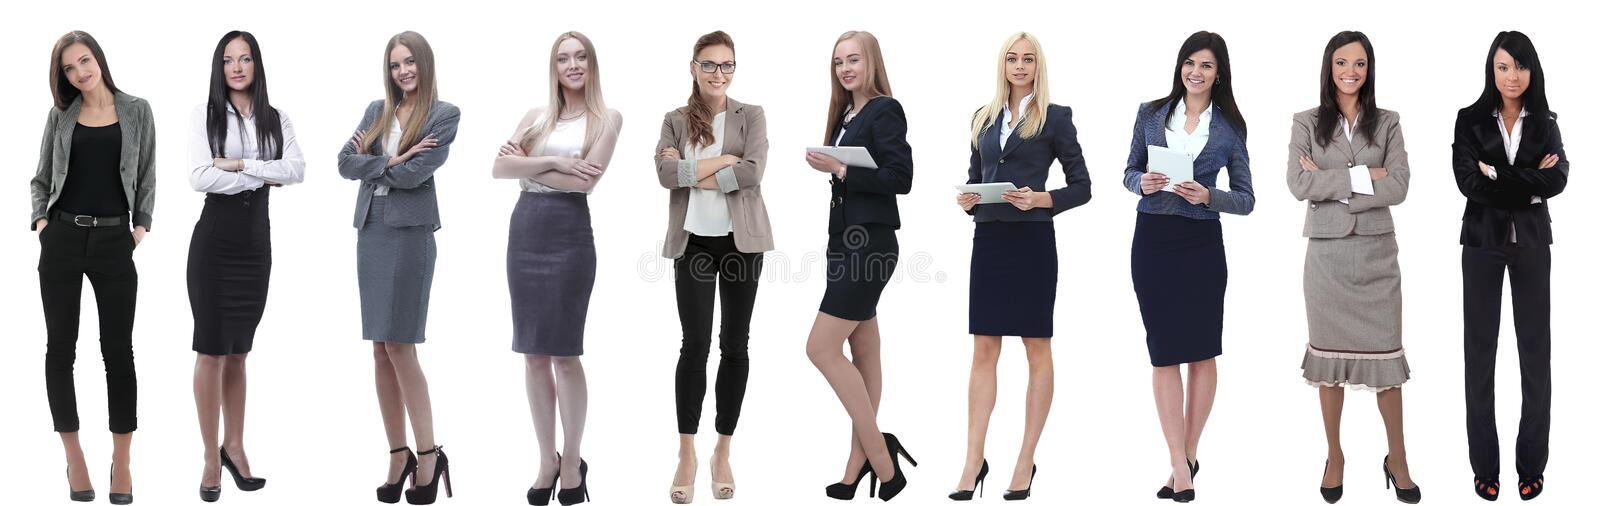 Panoramic collage of a group of successful young business women. stock images